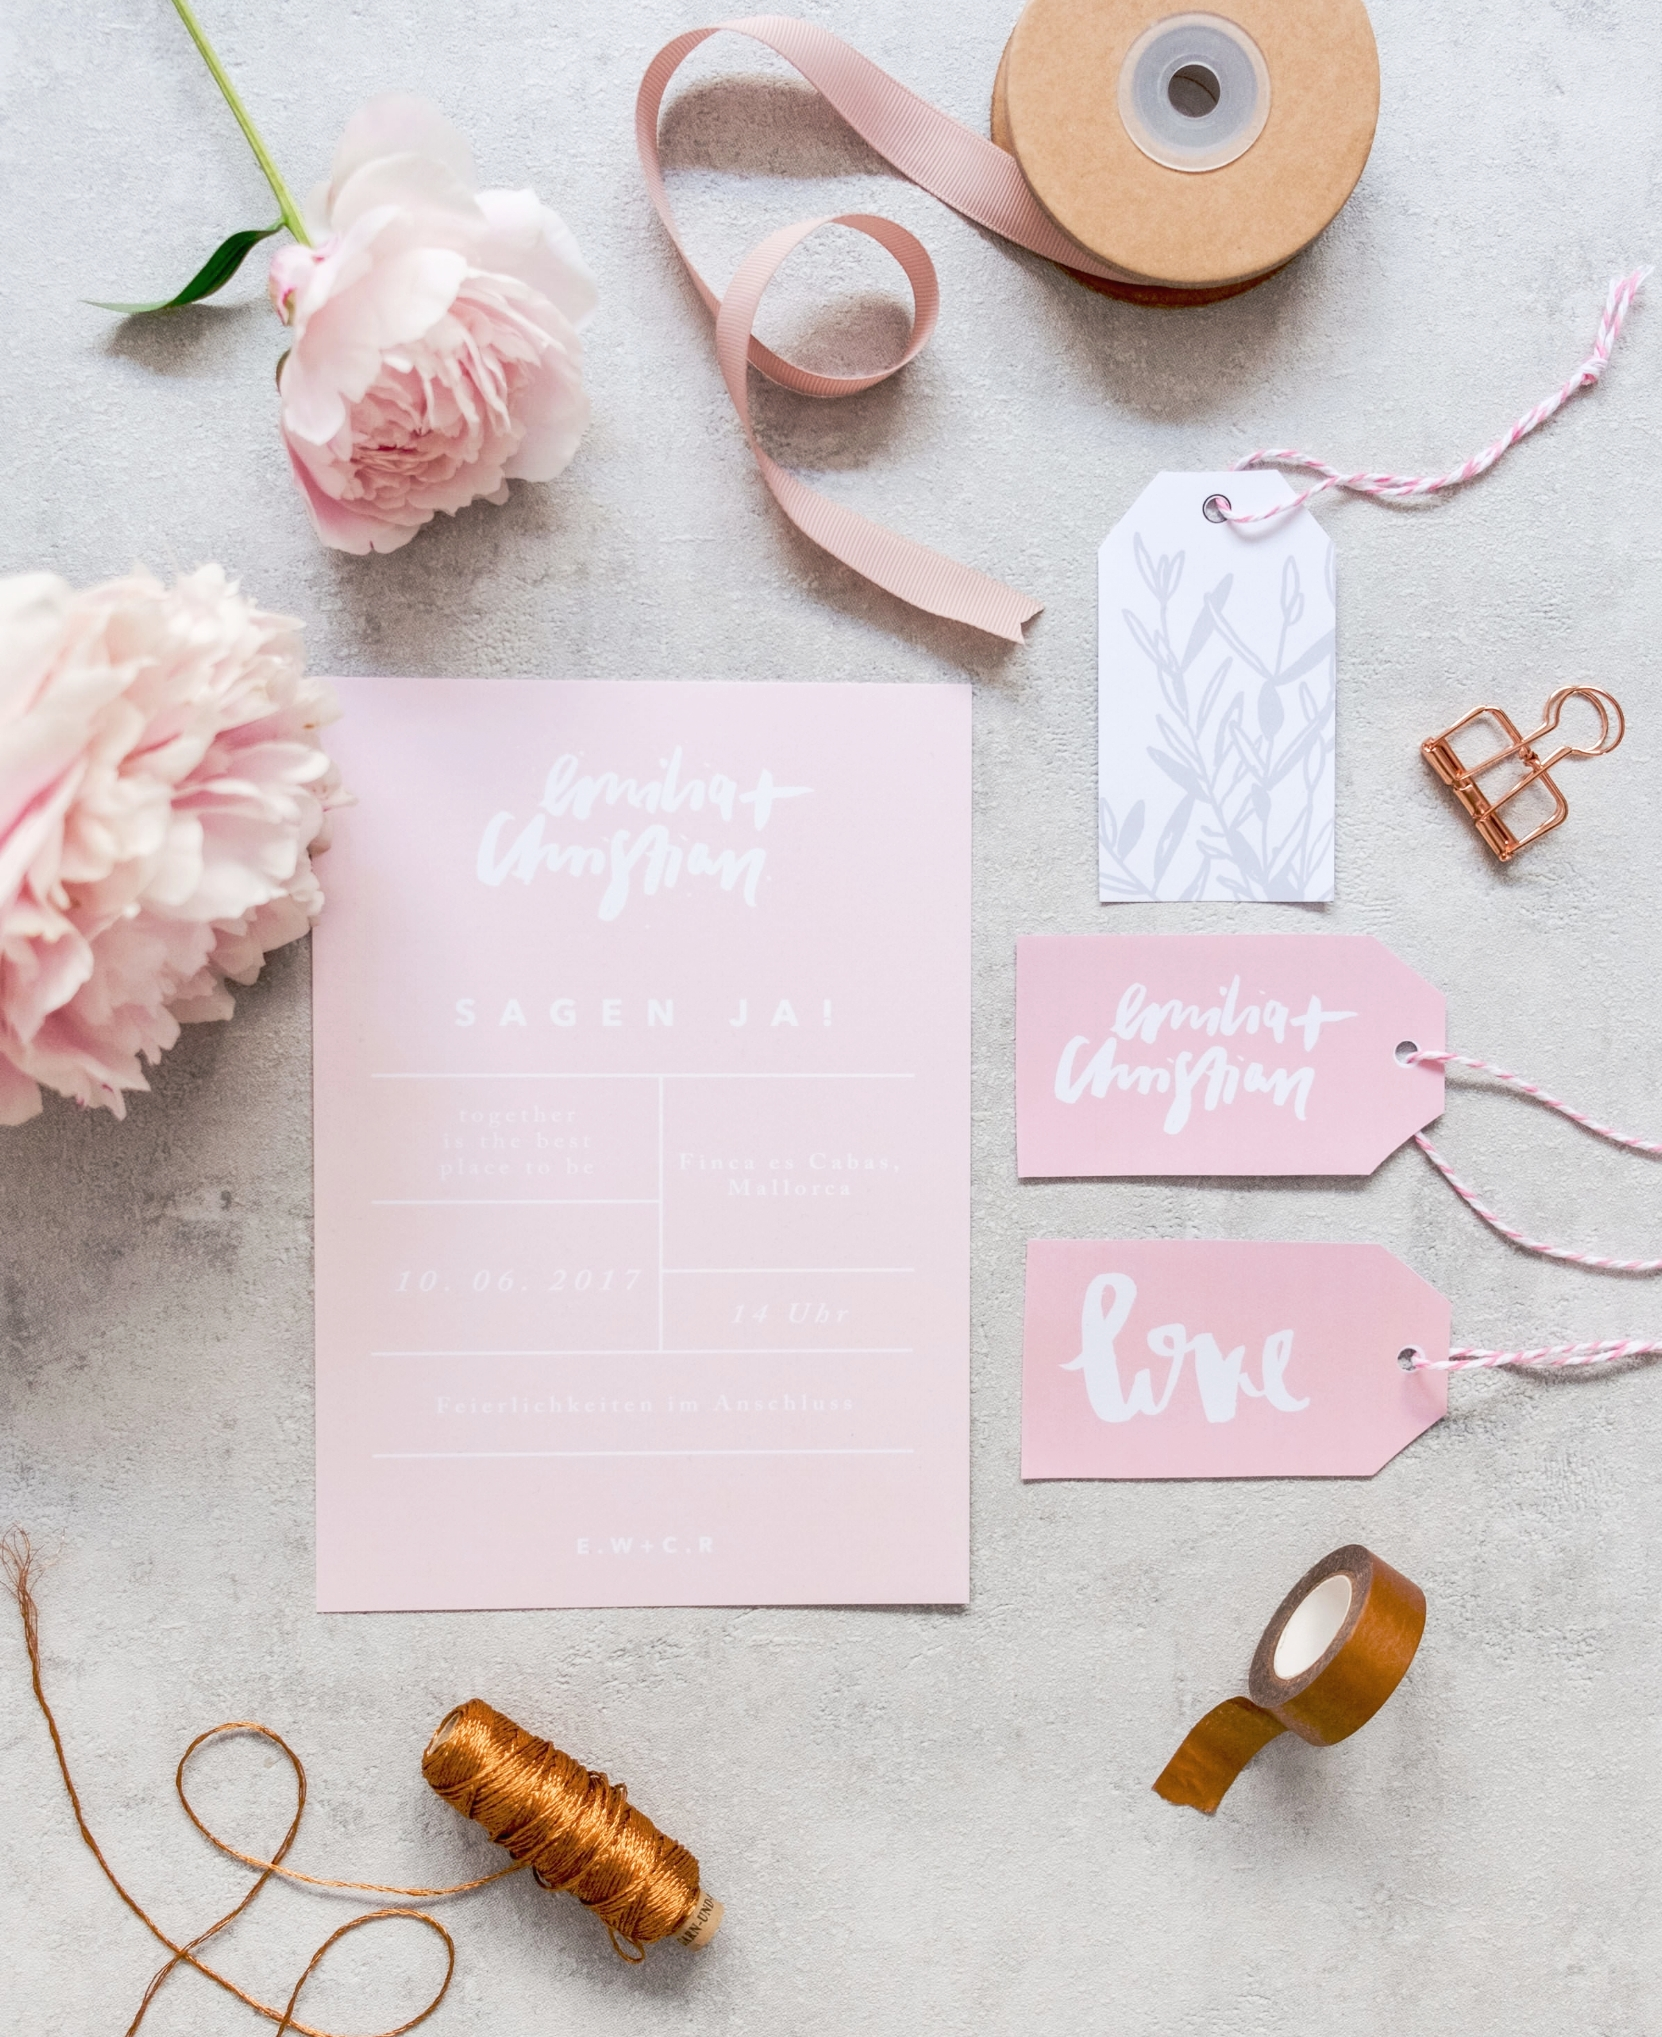 All about Blush - Modernes Brushlettering trifft auf zartes Blush. Clean, Modern, Industriell.